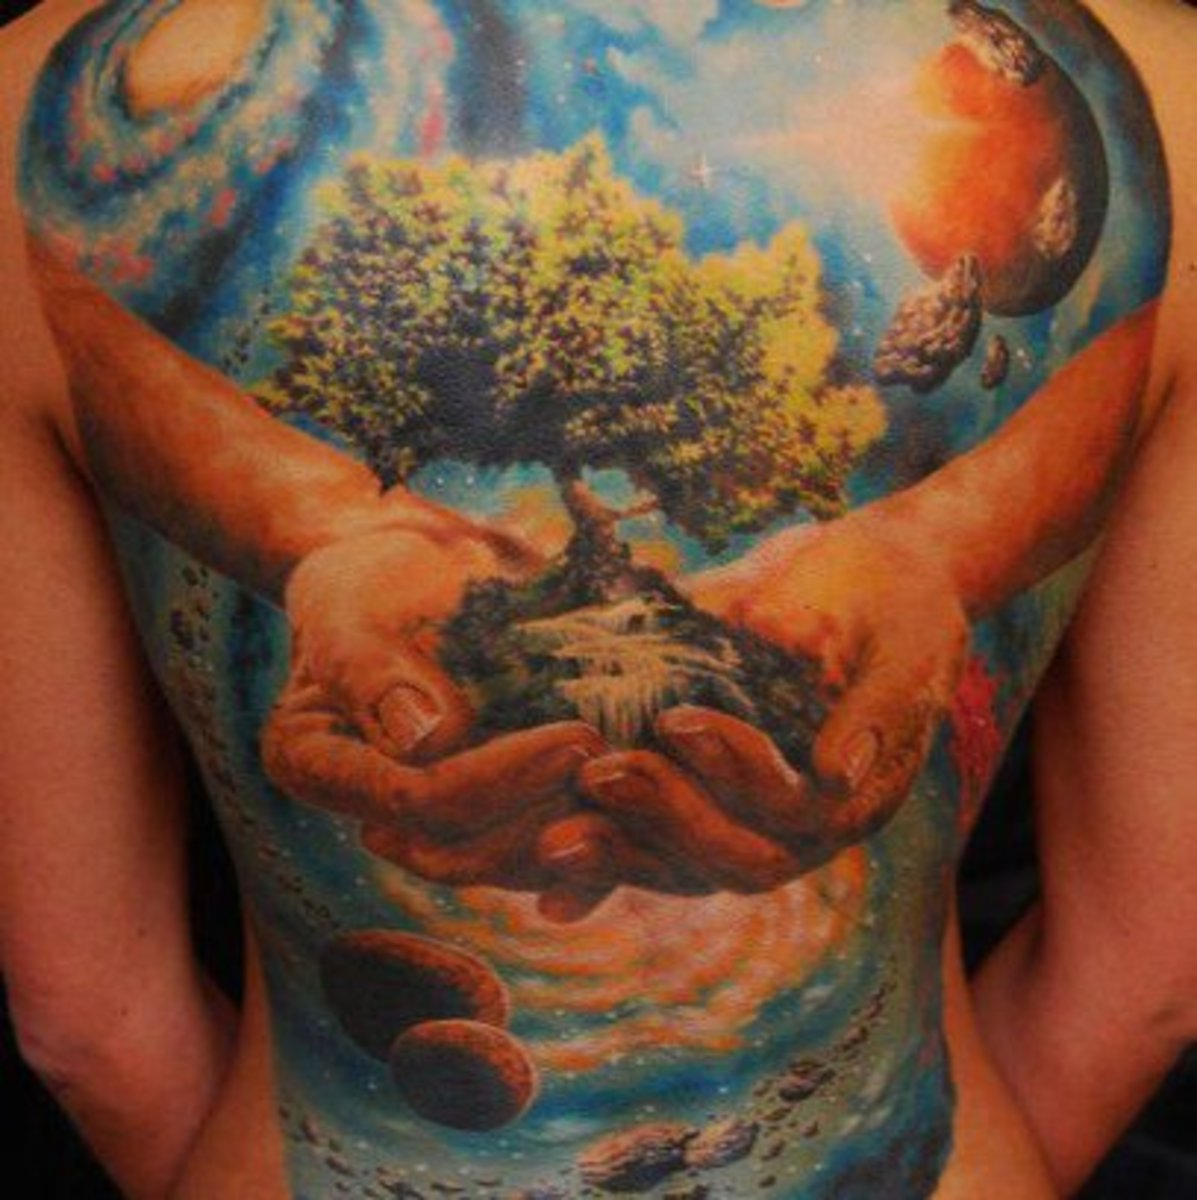 Earth Day Tattoos - Tattoo Ideas, Artists and Models